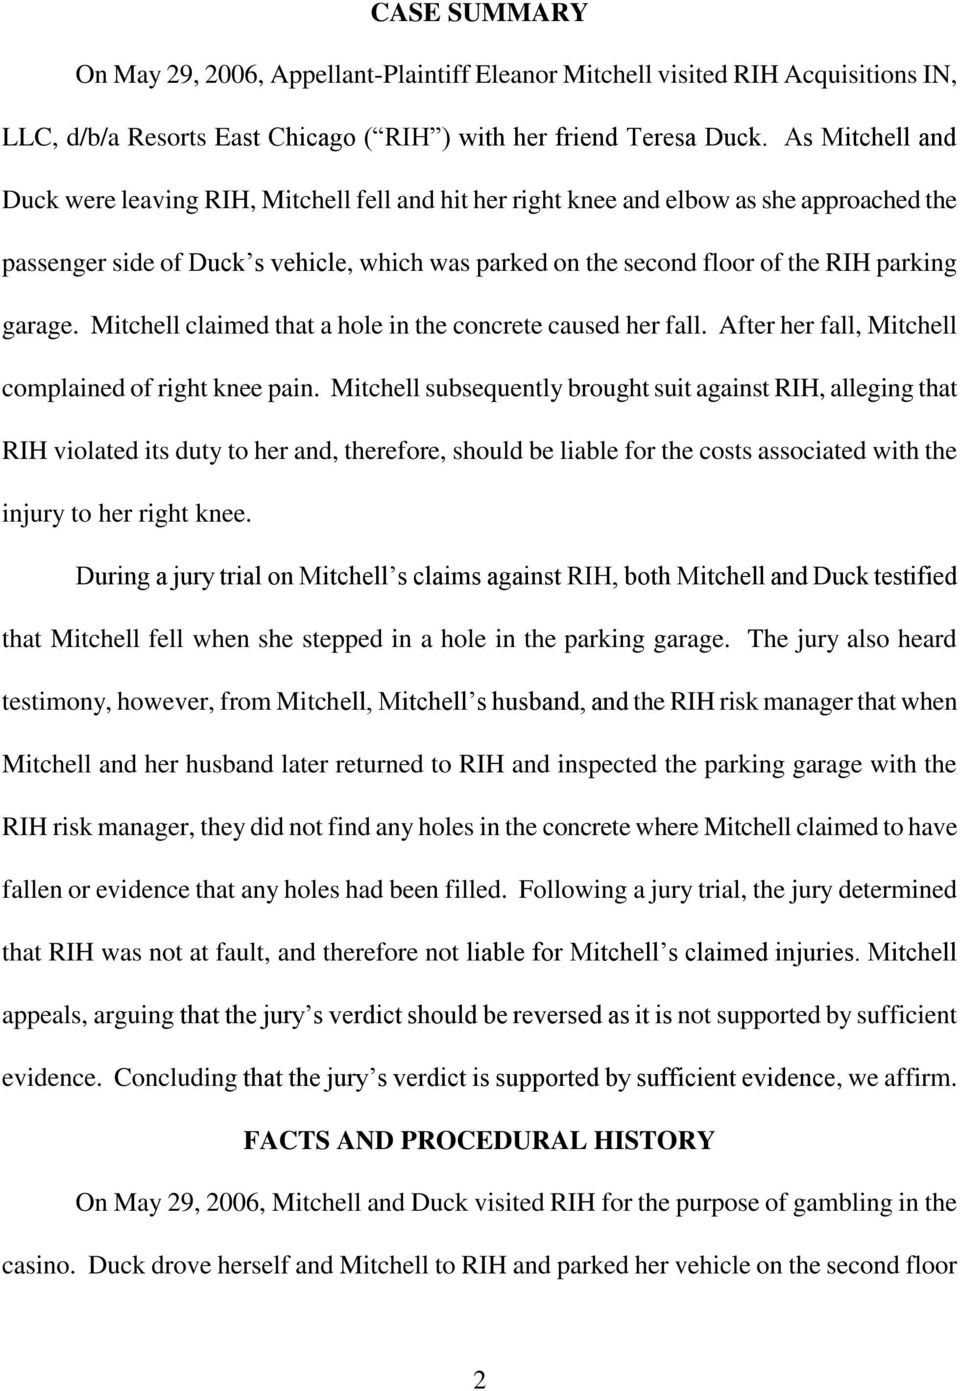 garage. Mitchell claimed that a hole in the concrete caused her fall. After her fall, Mitchell complained of right knee pain.